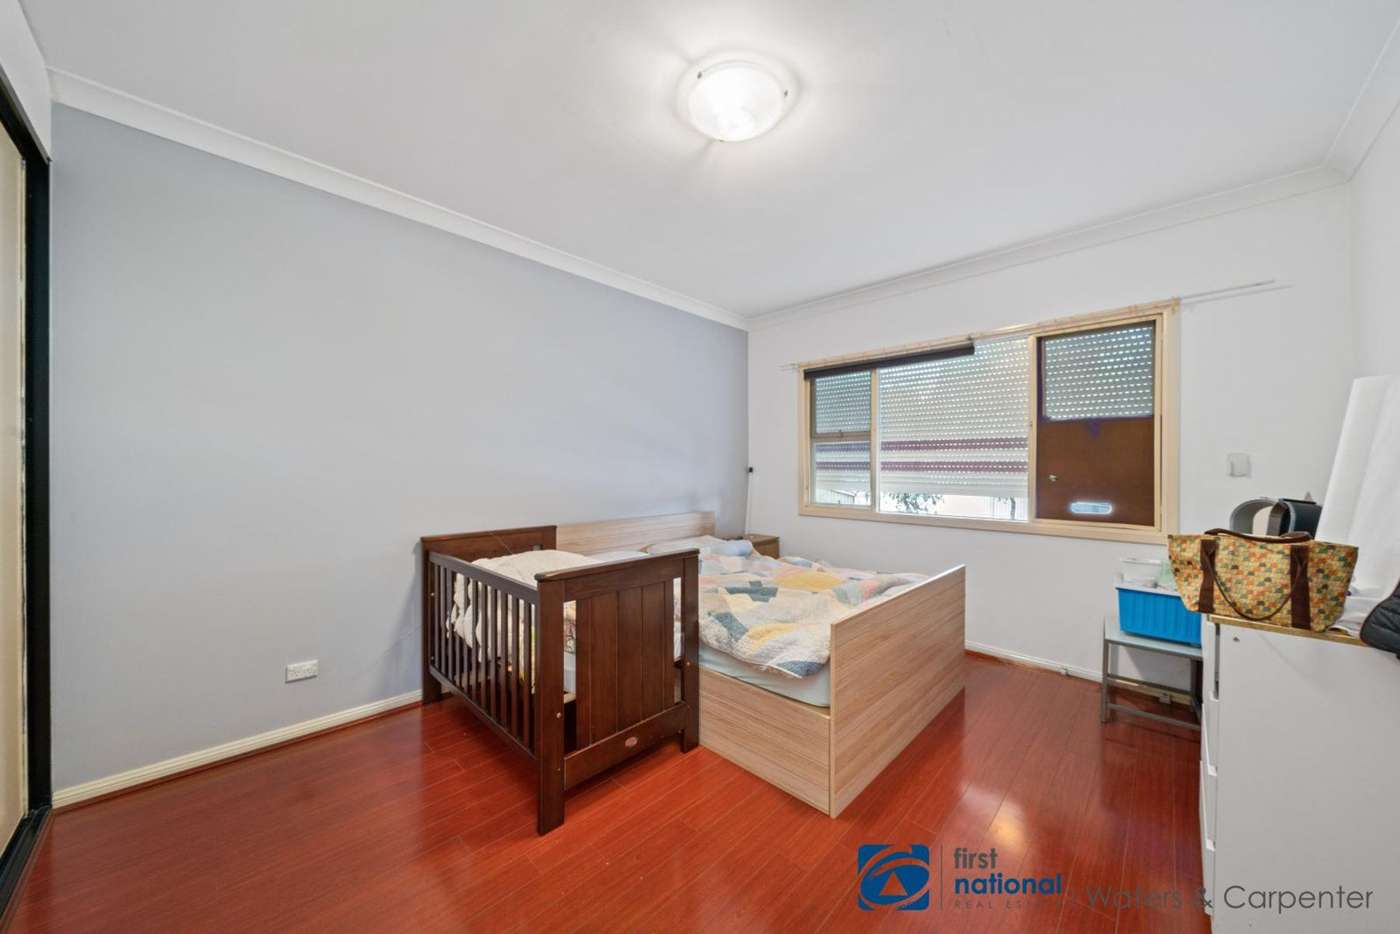 Fifth view of Homely house listing, 21 Union Road, Auburn NSW 2144